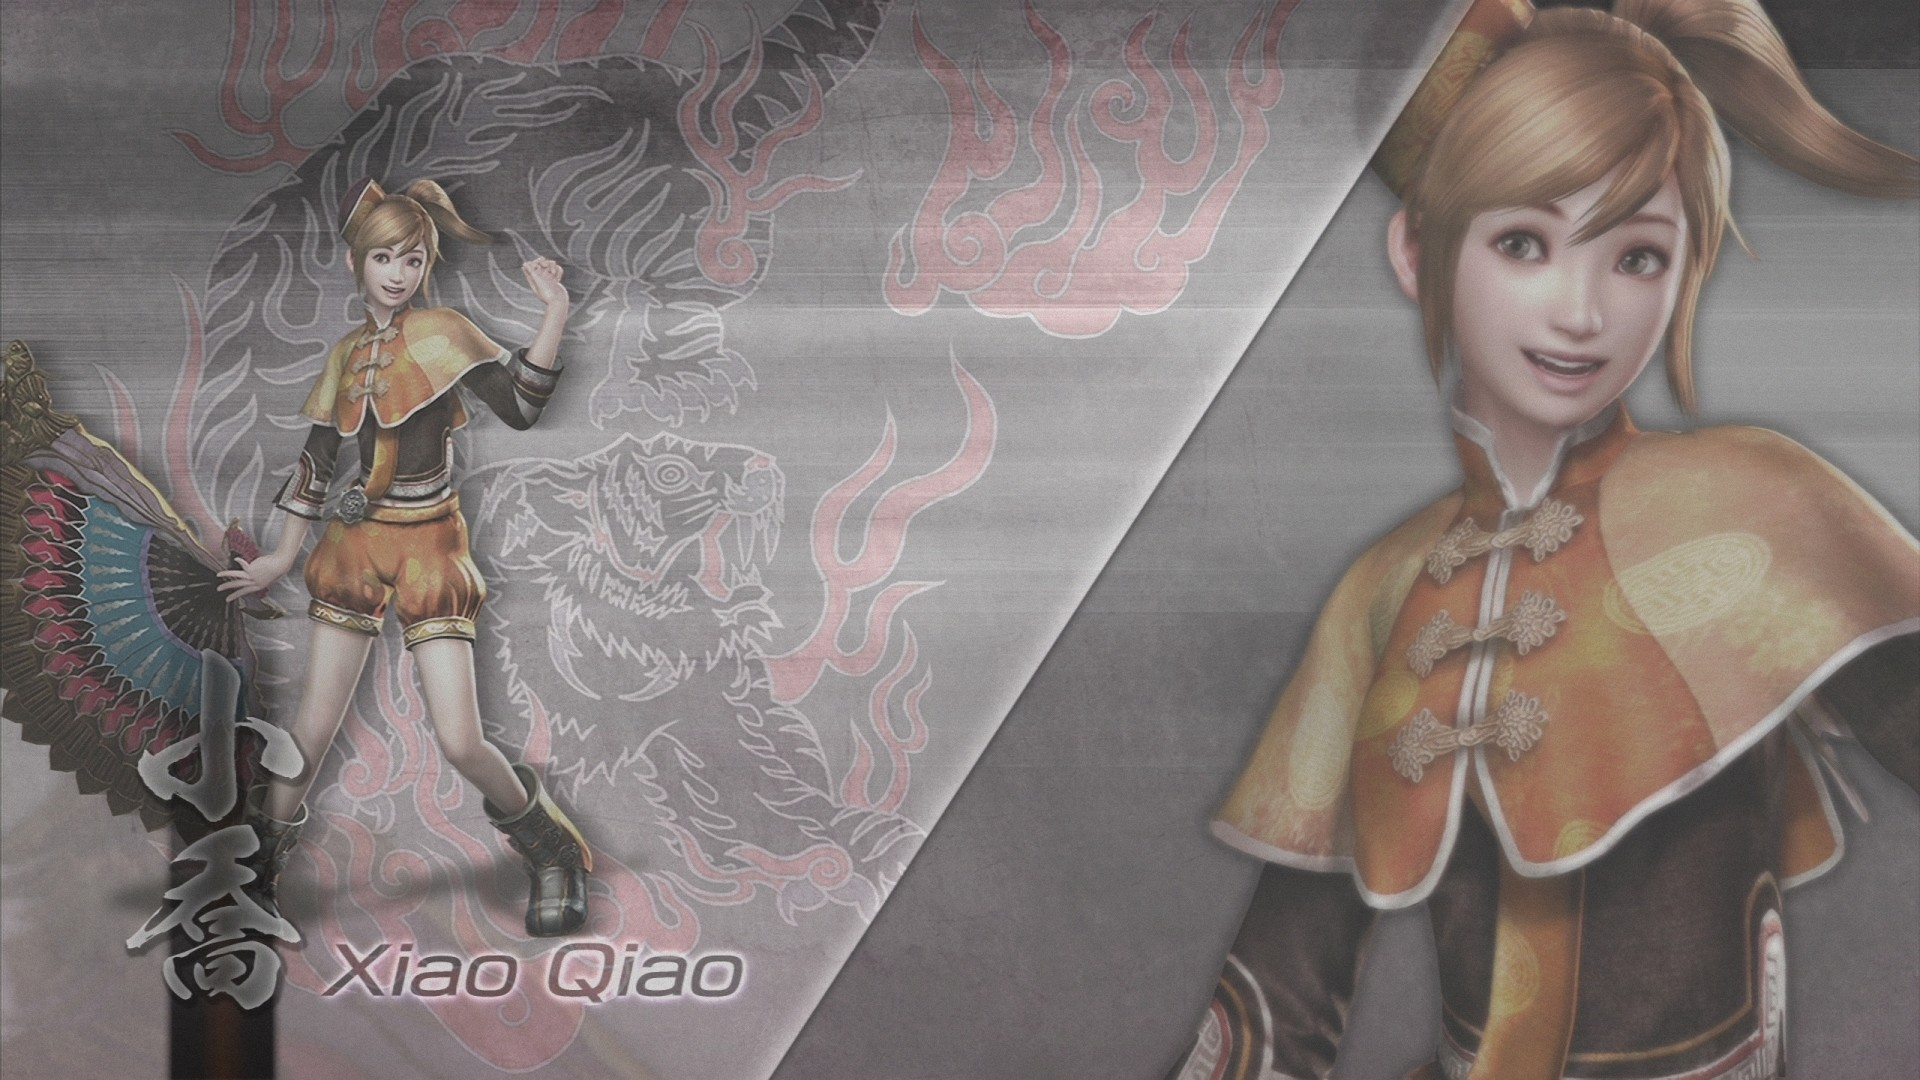 1920x1080 DynastyWarriors7 8 0 DW7 - Xiao Qiao by DynastyWarriors7